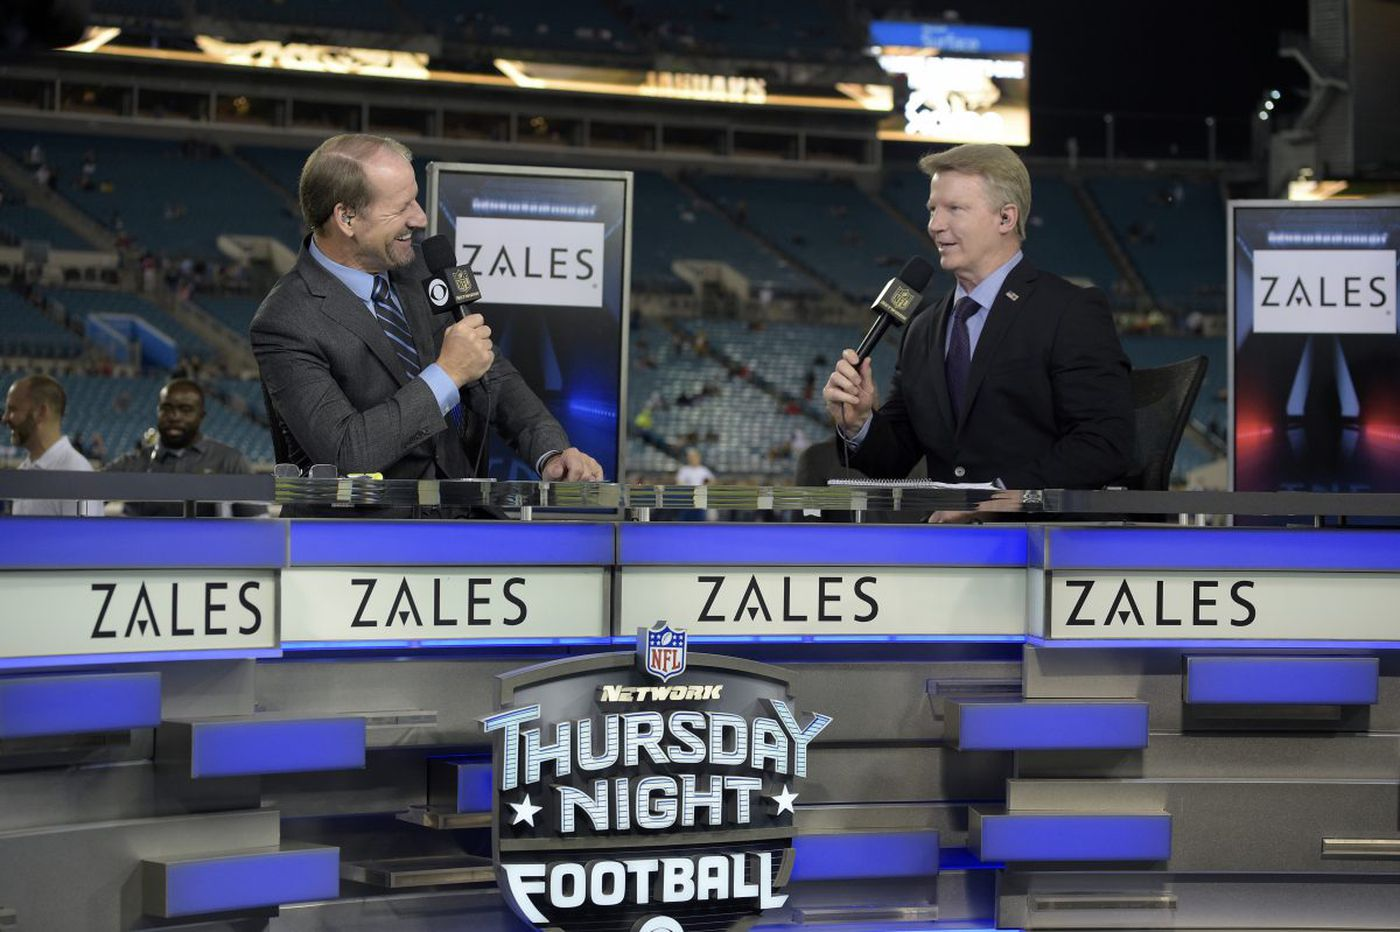 Ready for some football? All NFL games will air online, but watching won't be easy